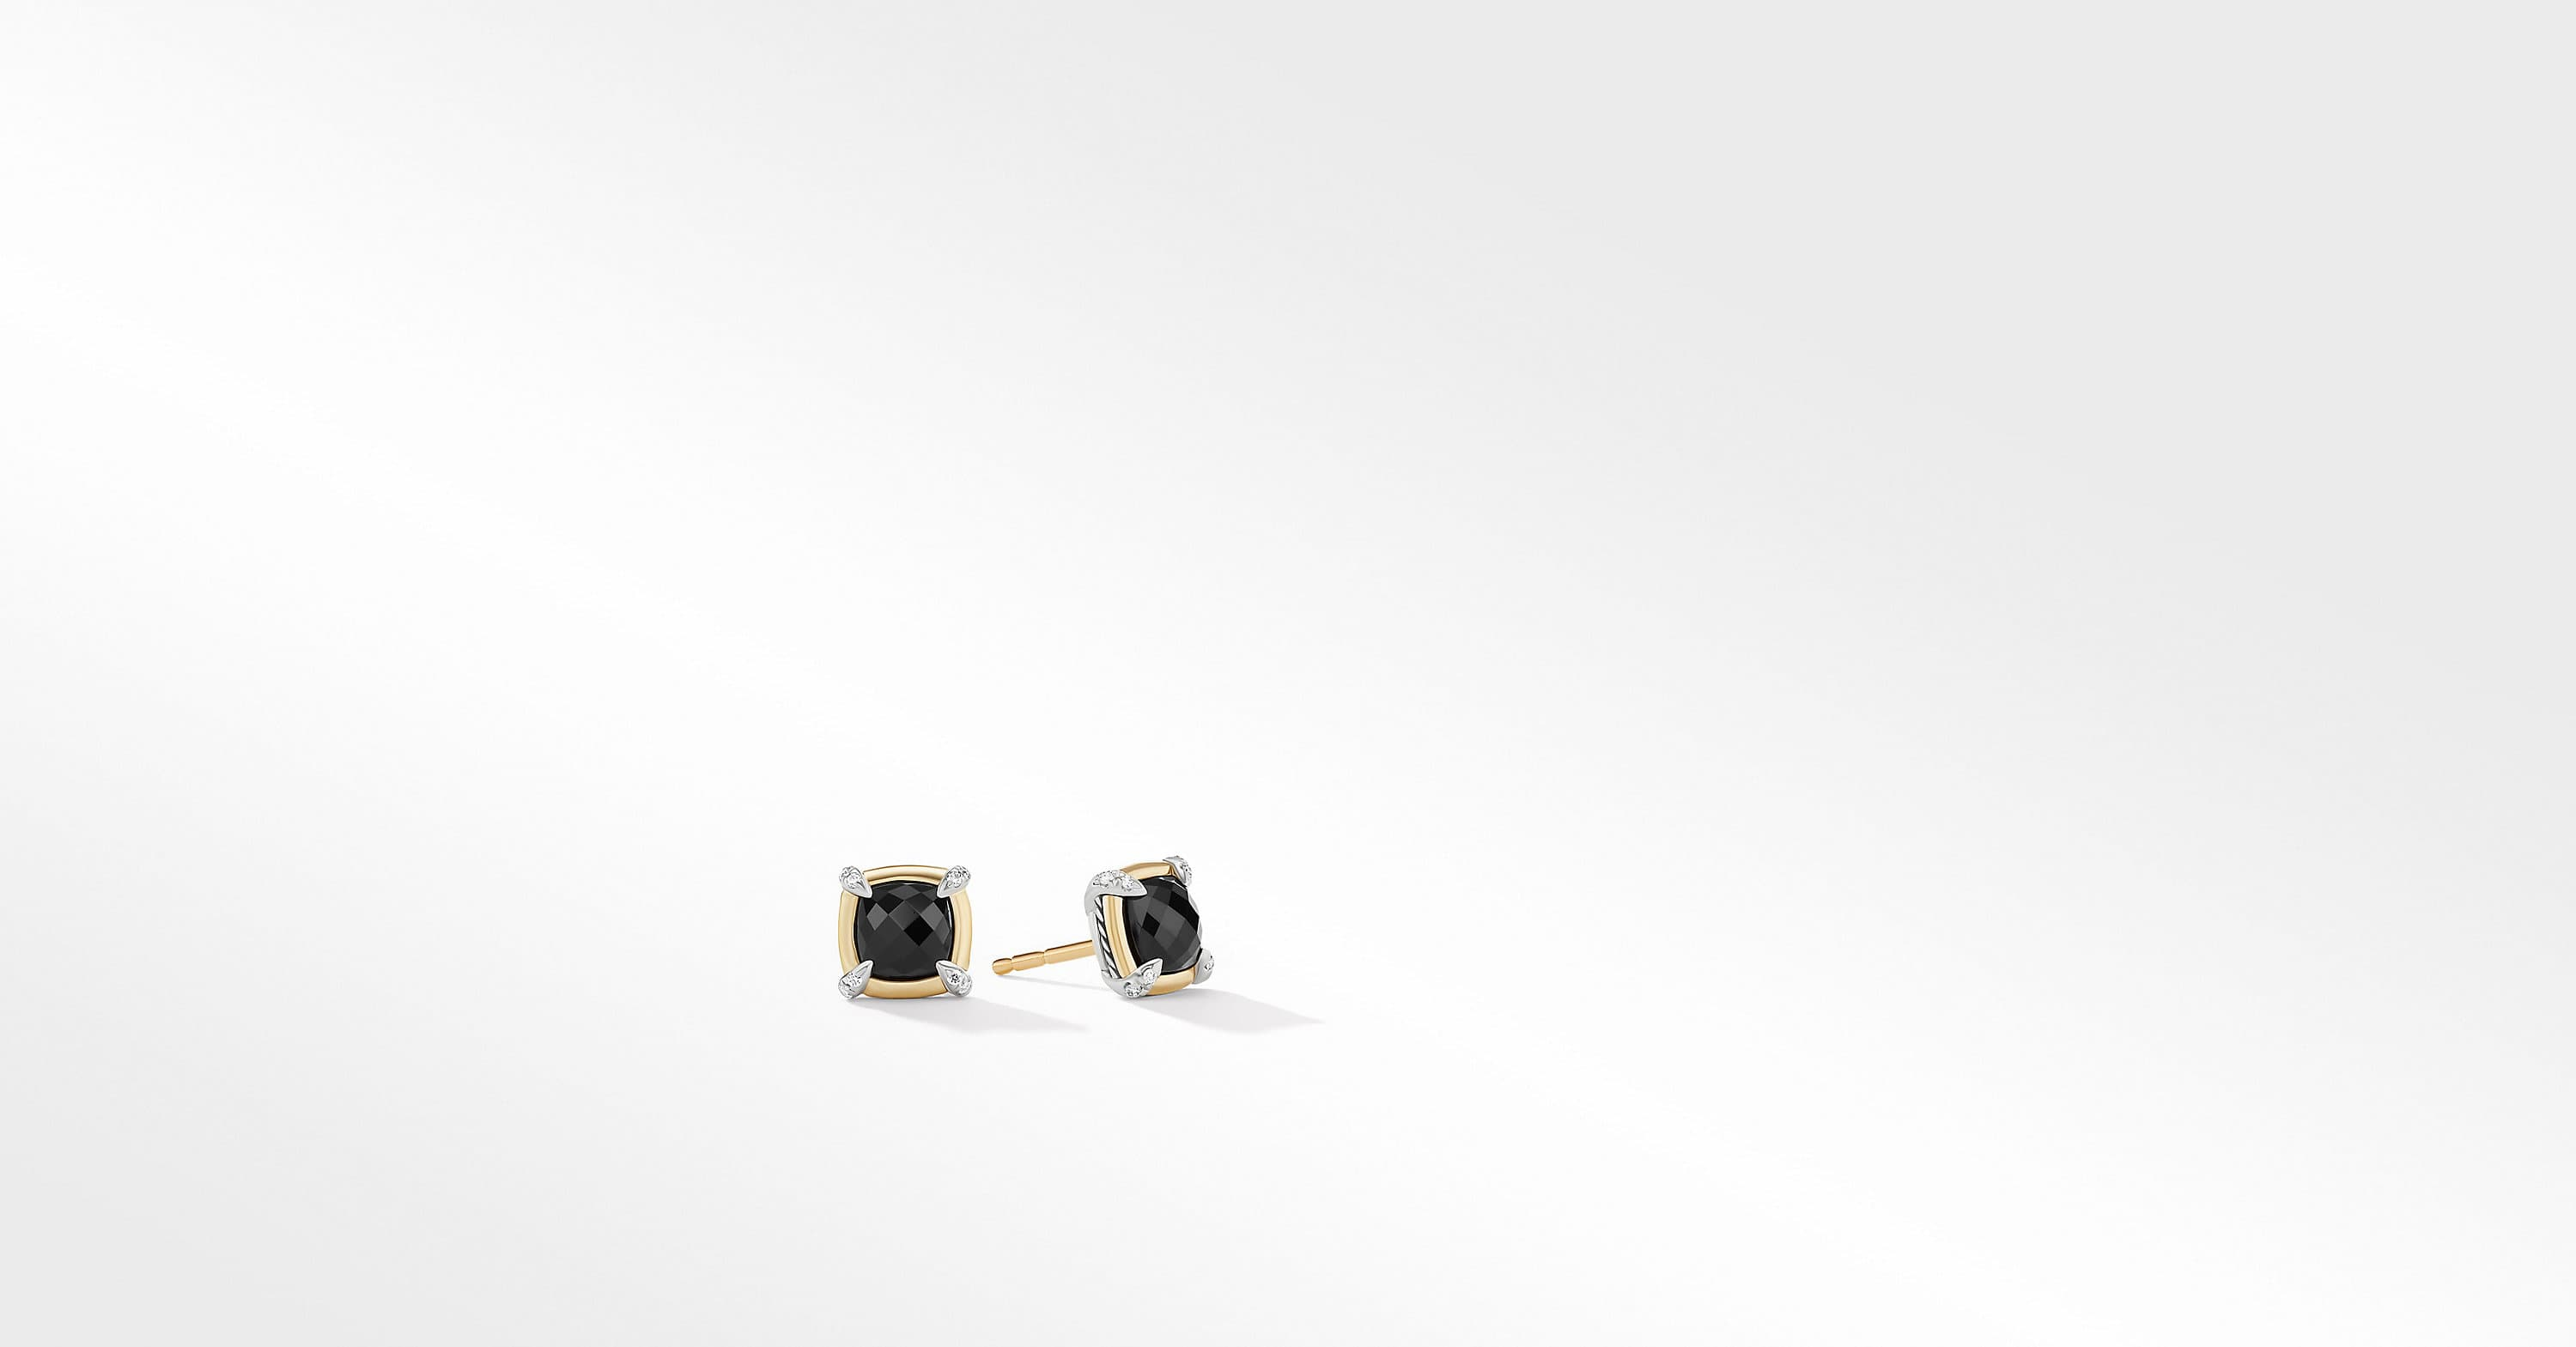 Petite Chatelaine Stud Earrings with 18K Yellow Gold Bezel and Diamonds, 7mm